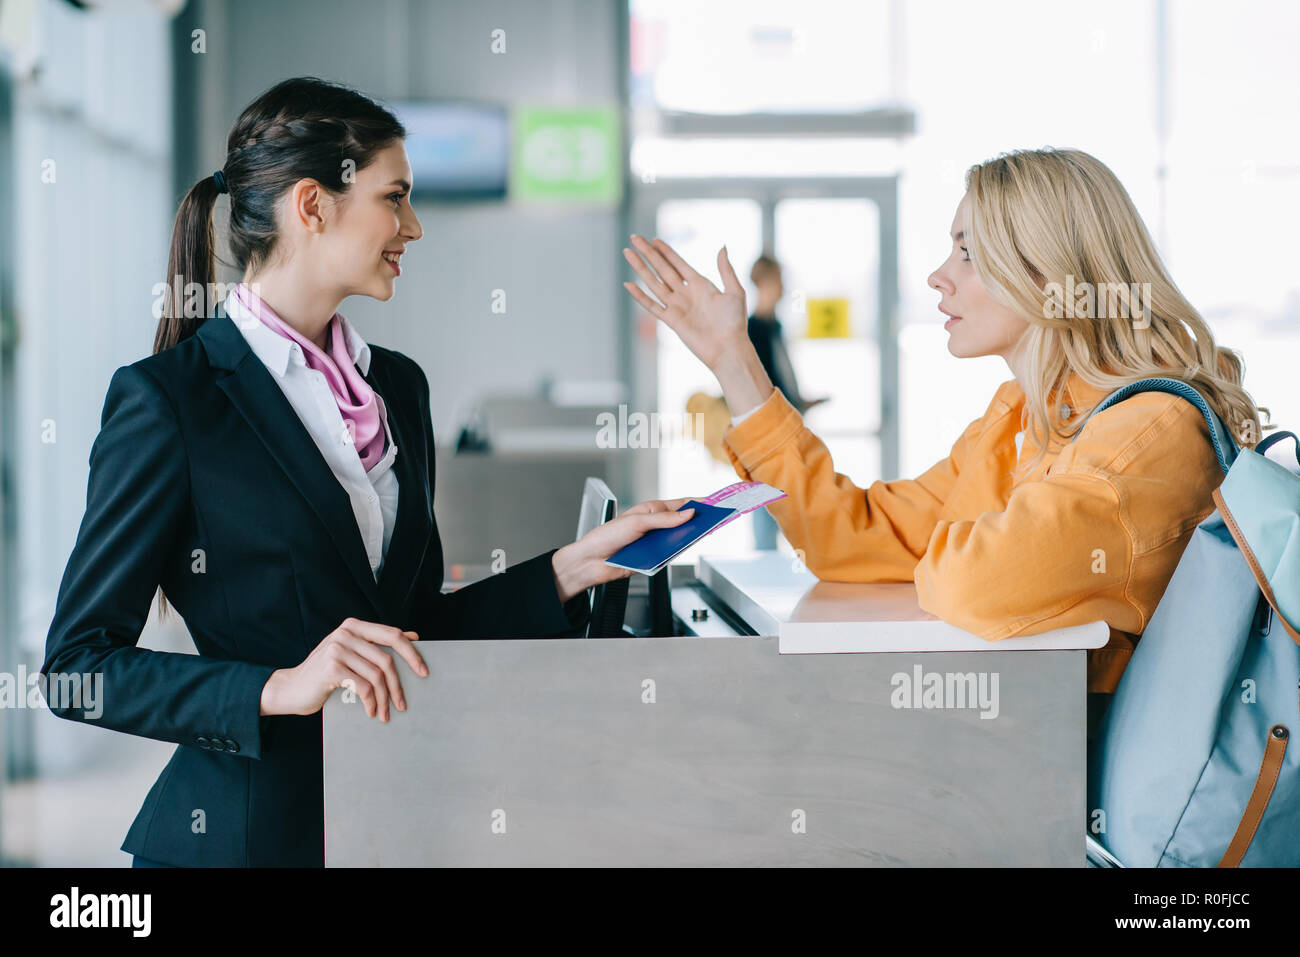 Fantastic Smiling Airport Worker Checking Documents Of Young Female Download Free Architecture Designs Xerocsunscenecom